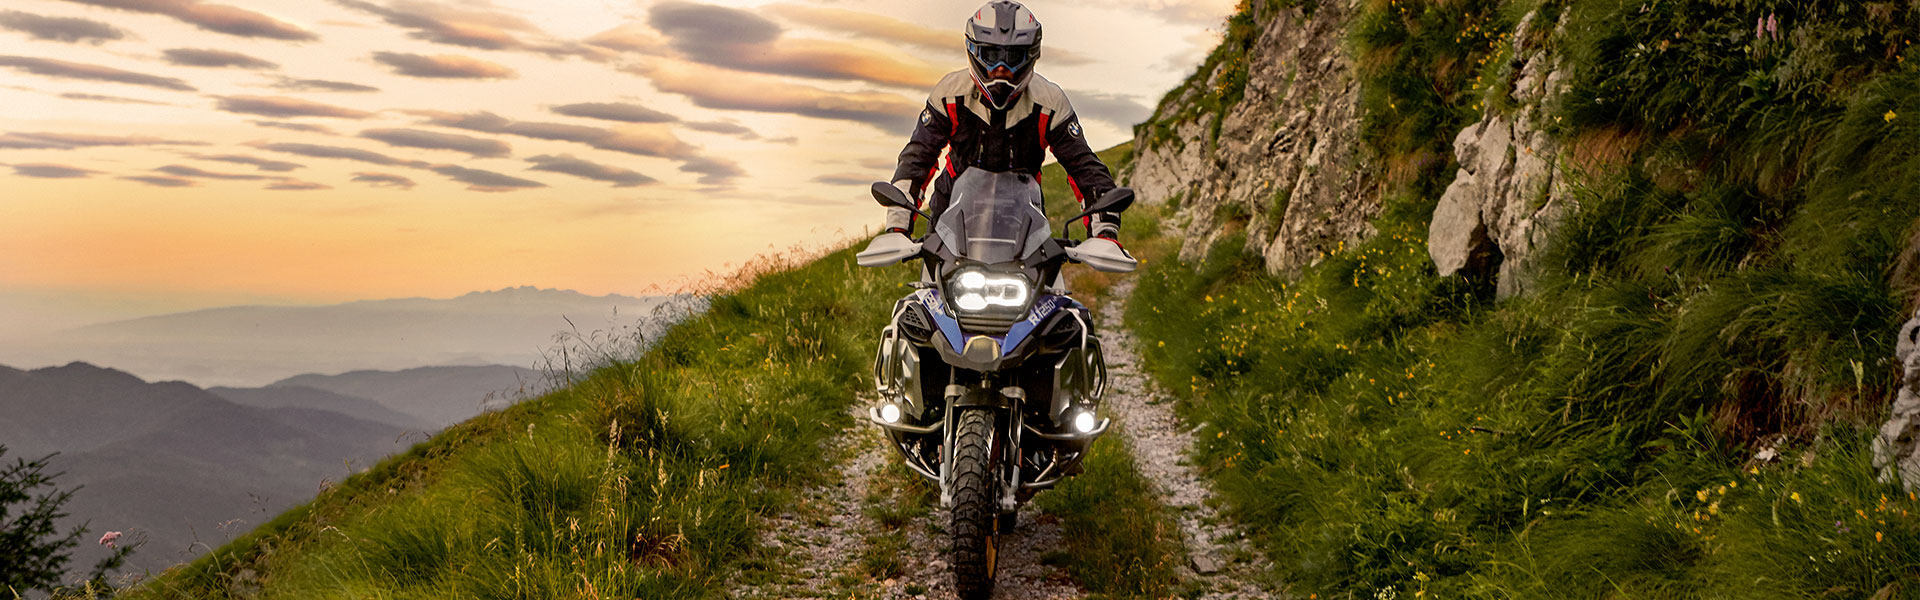 R 1250 GS Adventure Rallye TE